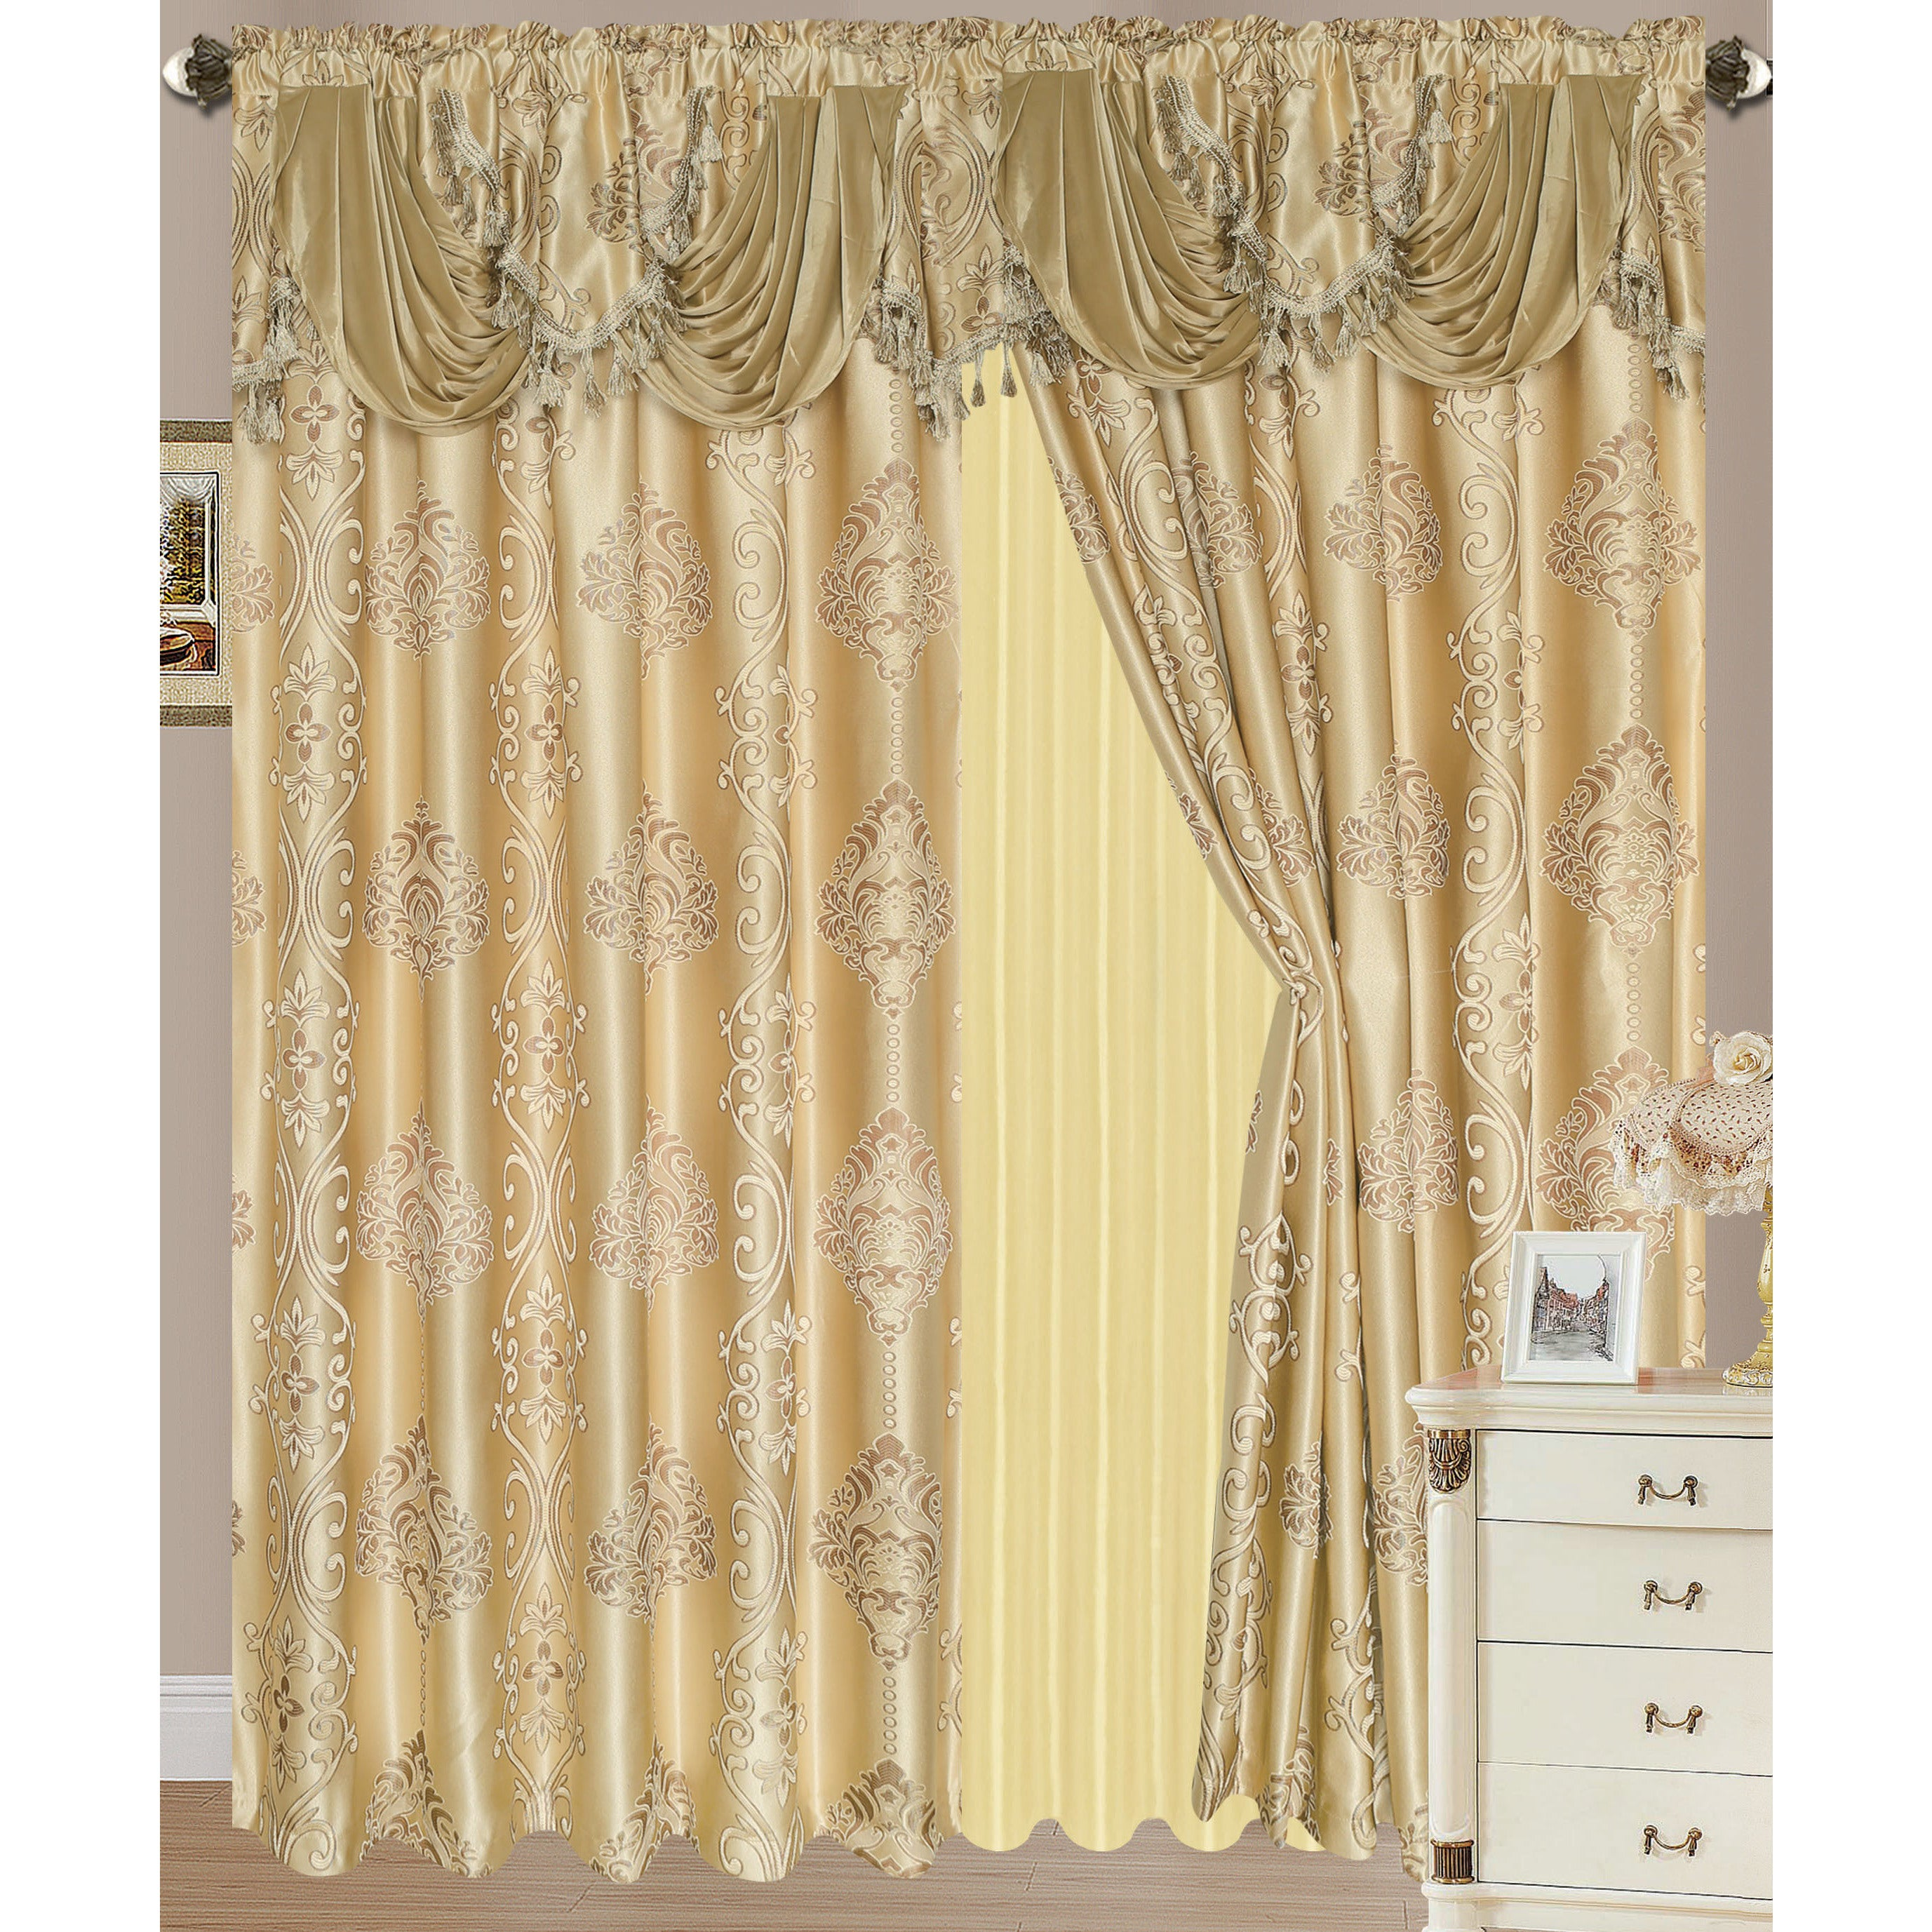 in blinds home window treatments rod curtain curtains source at shop single to rods hardware com project burnished decor bronze lowes pl